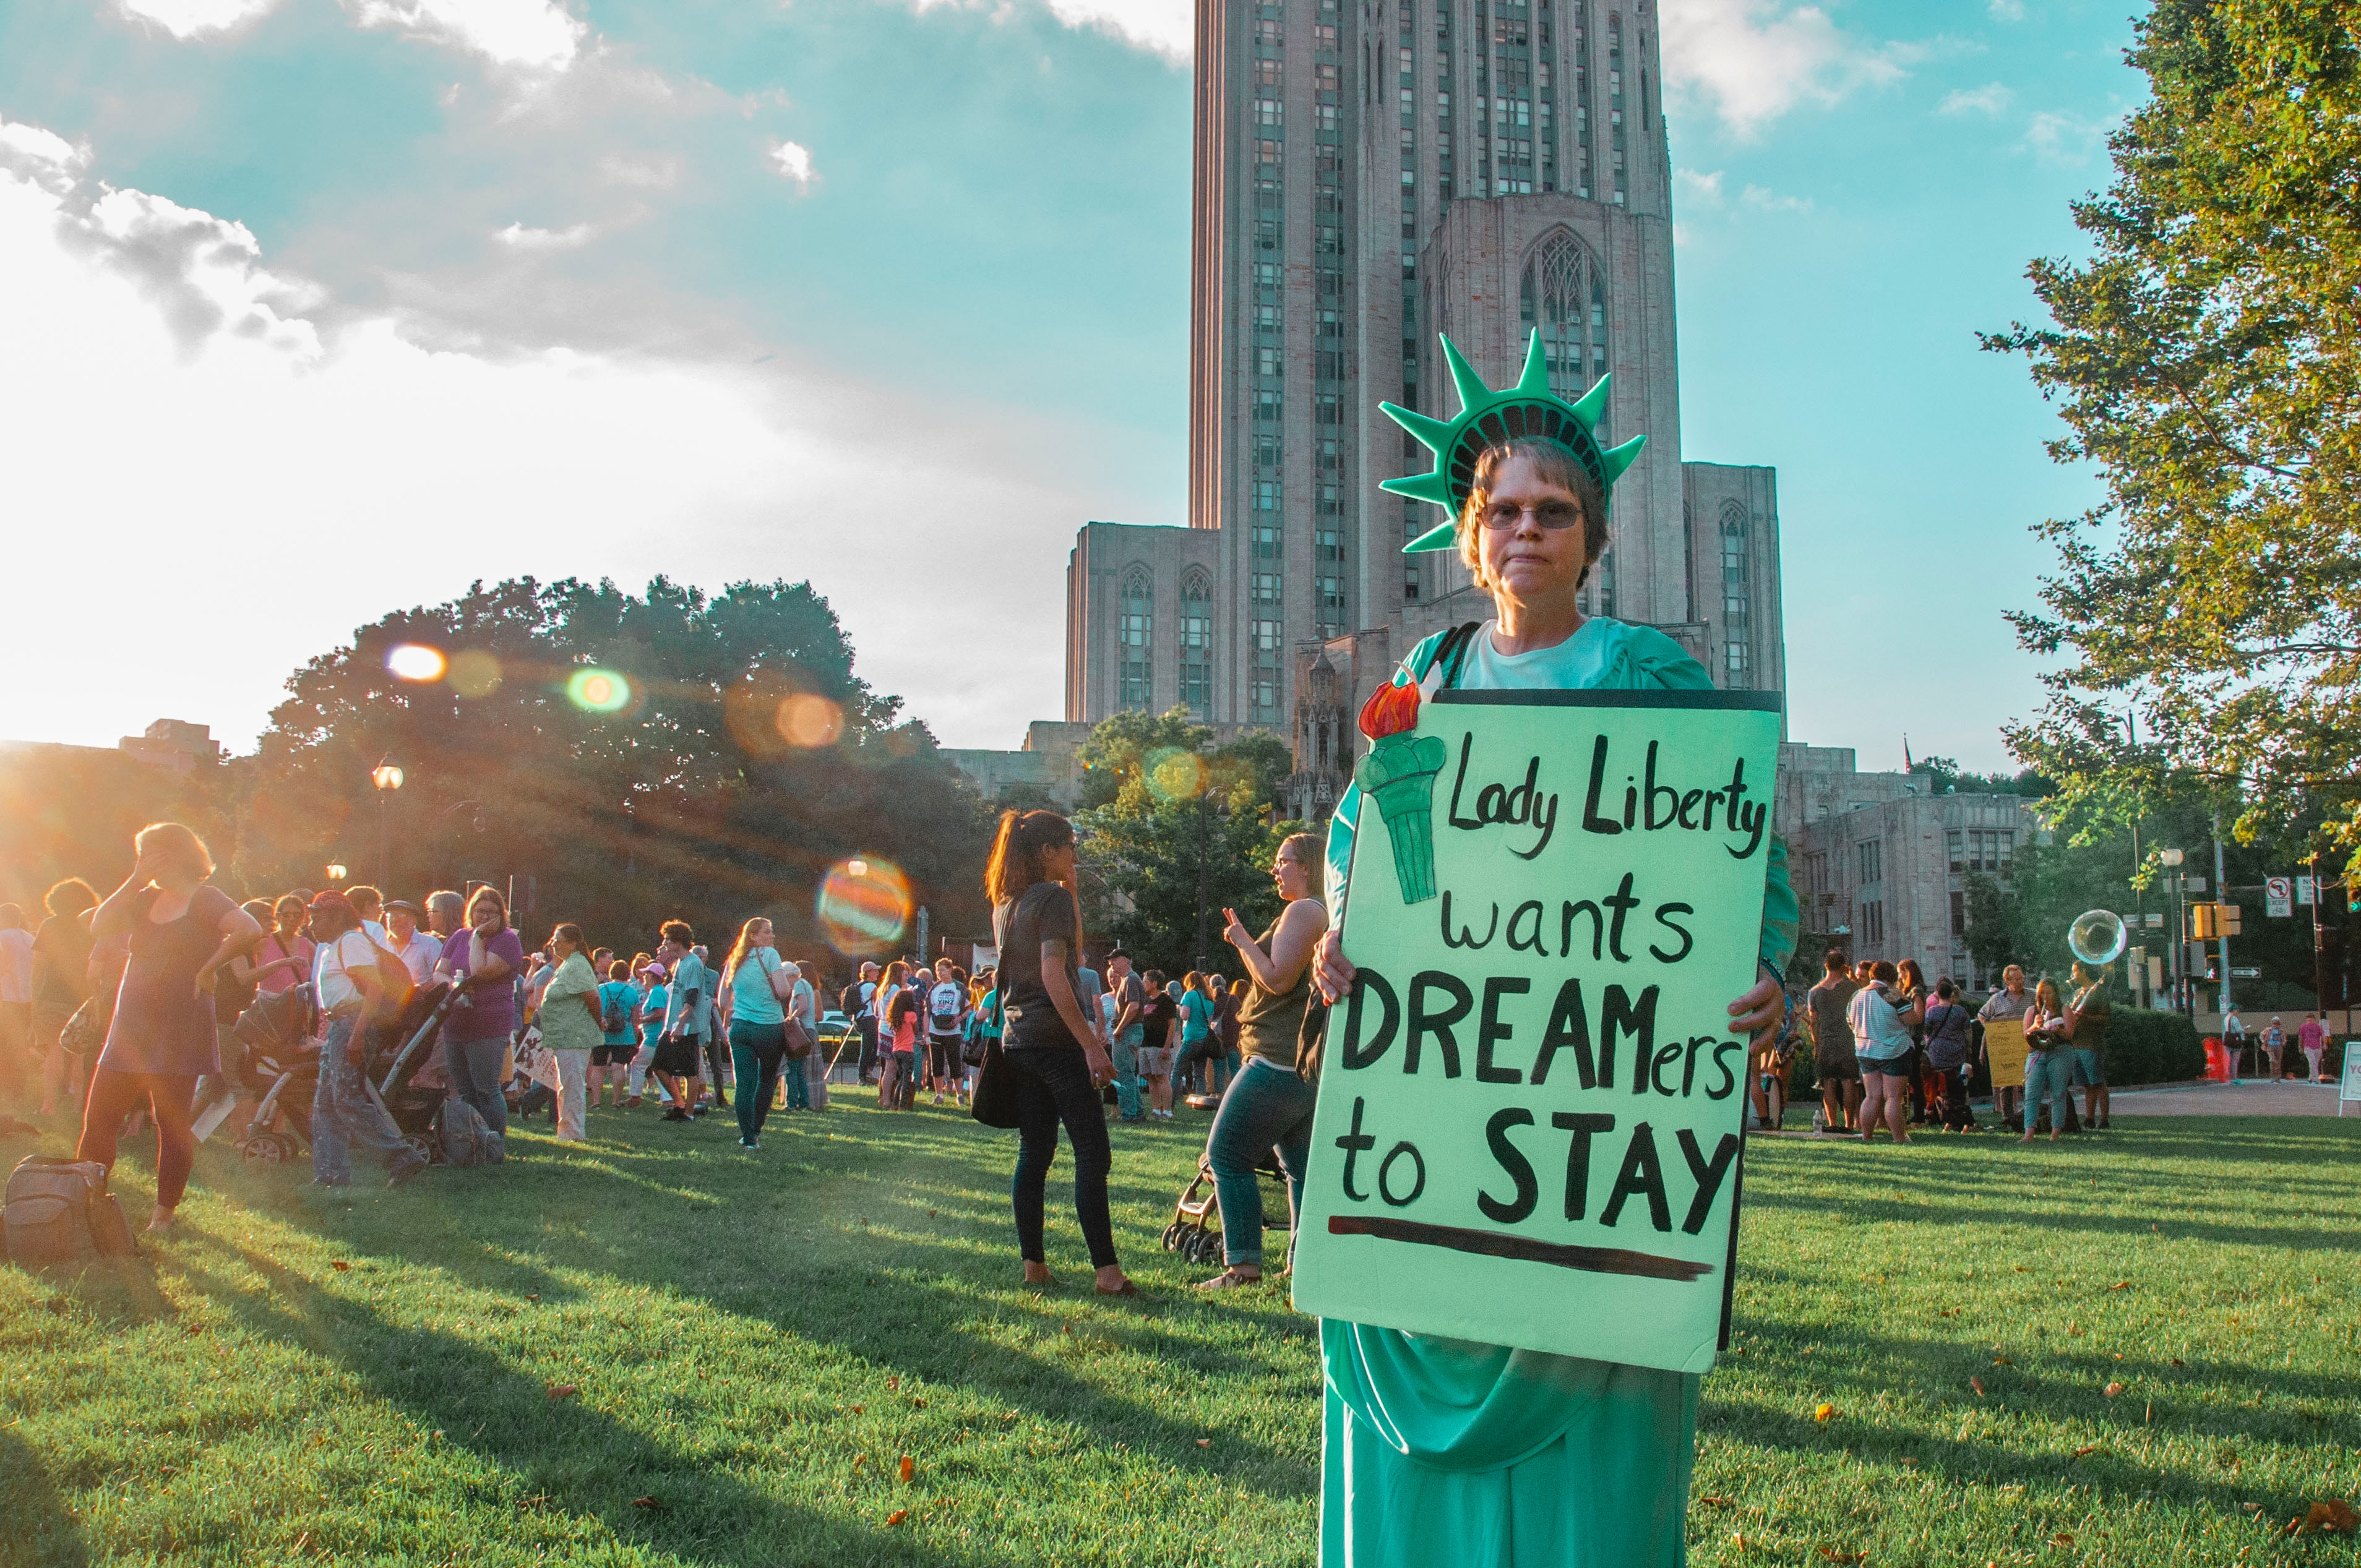 A woman protests DACA.